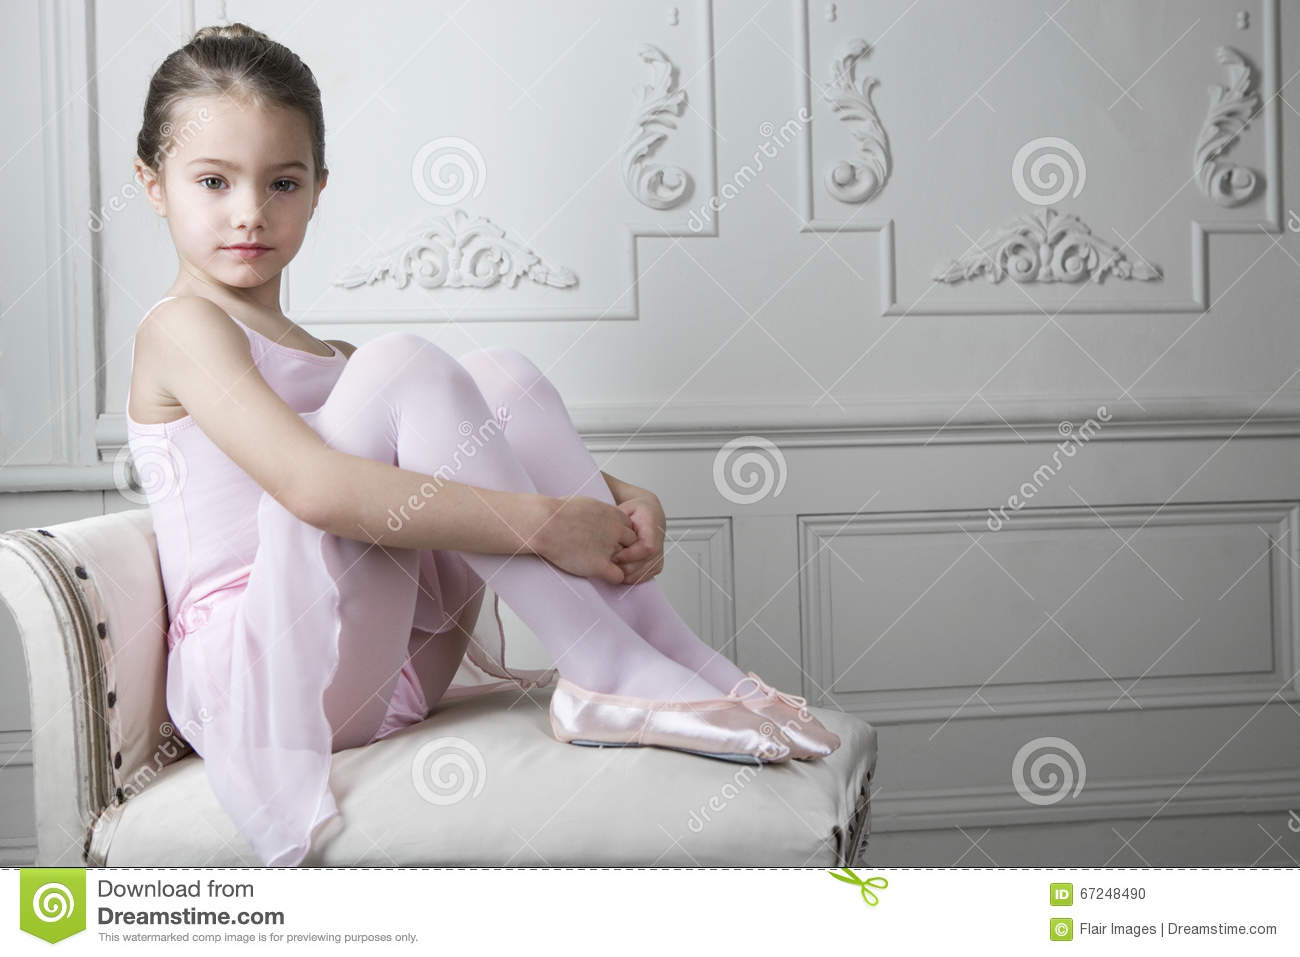 60a3b9b35bc255 Young Girl In A Tutu And Ballet Shoes Sitting On A Chair Stock Photo ...